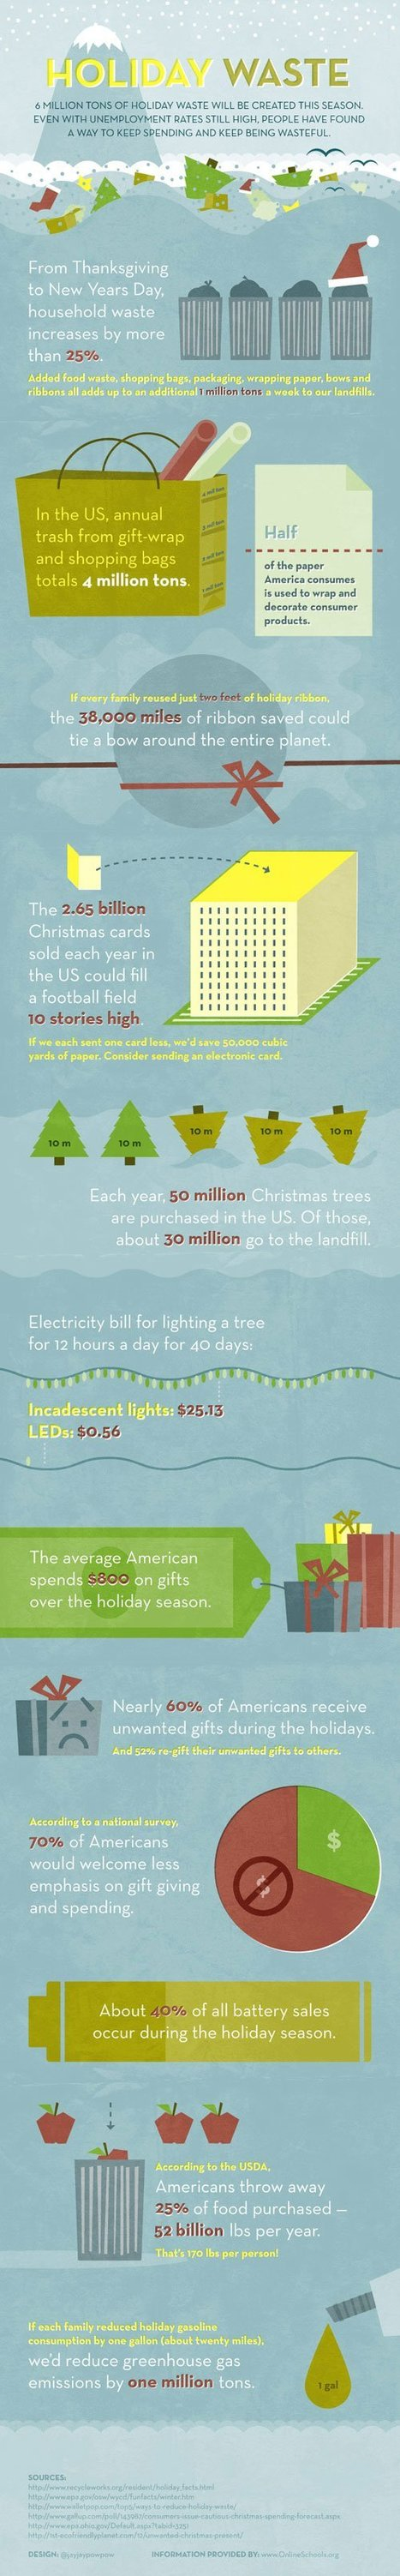 Top 10 Ways to Go Green this Holiday Season | AP Human Geography JCHS | Scoop.it